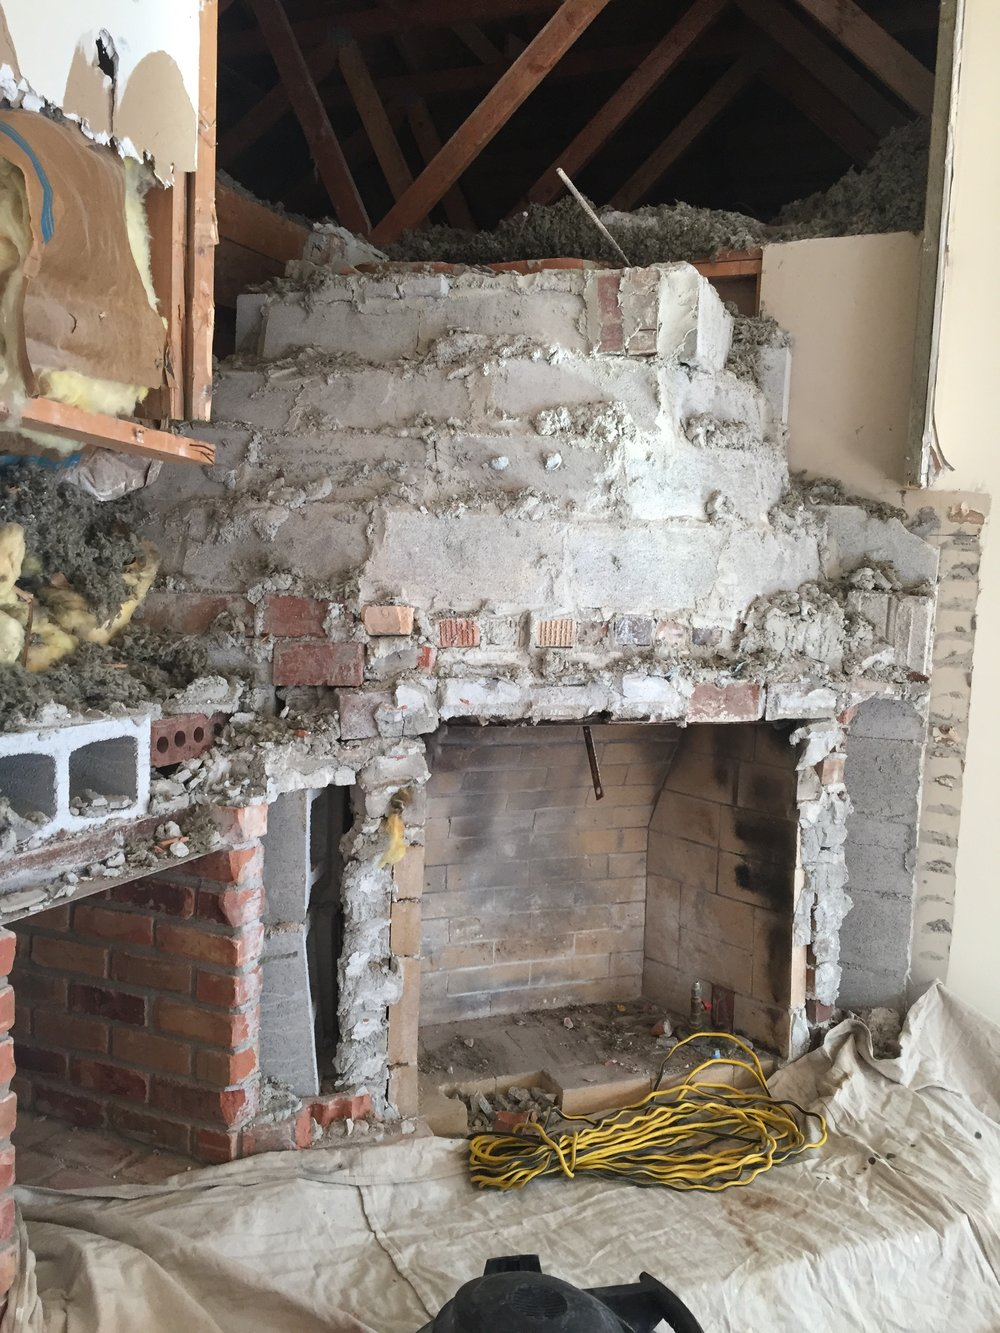 After taking it down more we decided to take out the whole thing! These fireplaces were a mess! So so much brick and concrete.